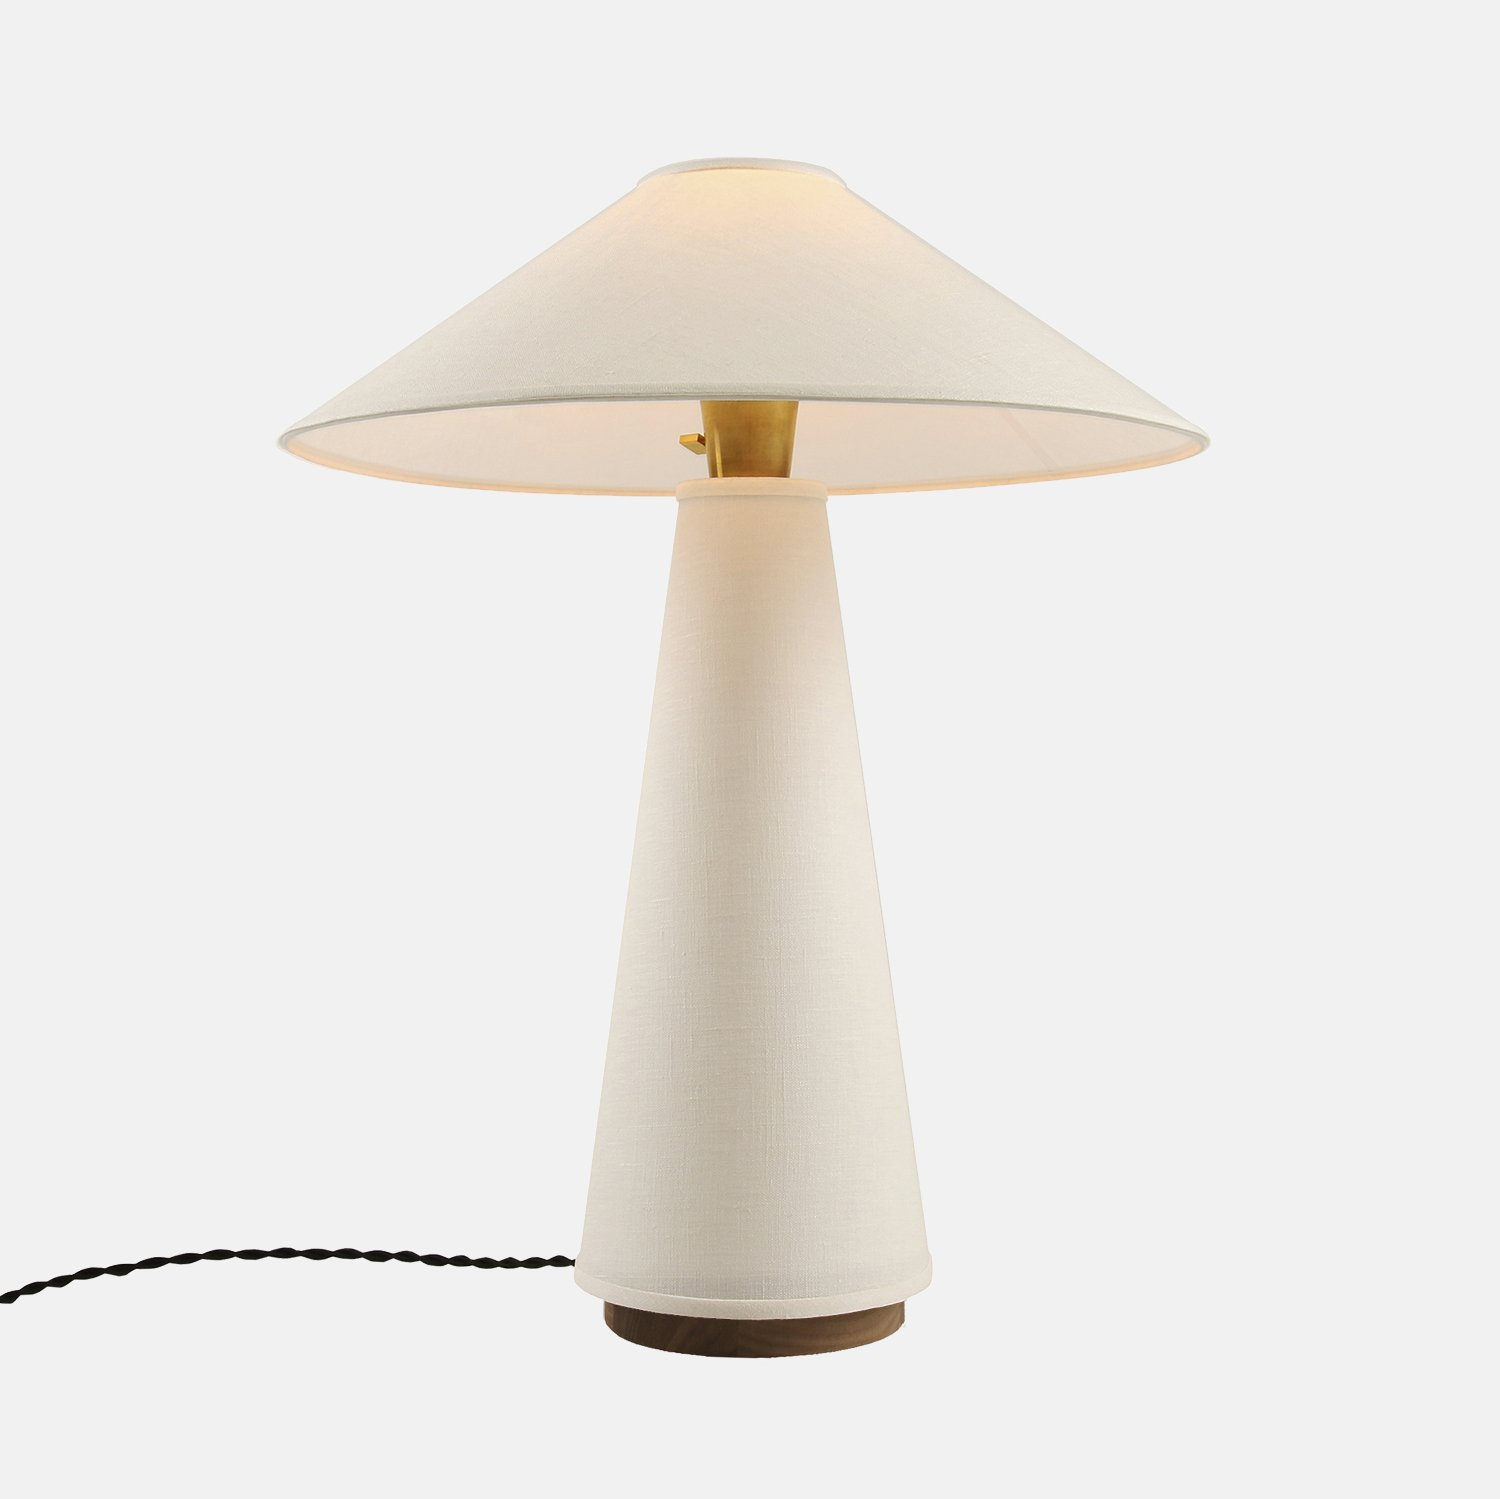 Linden Table Lamp by Studio DUNN.